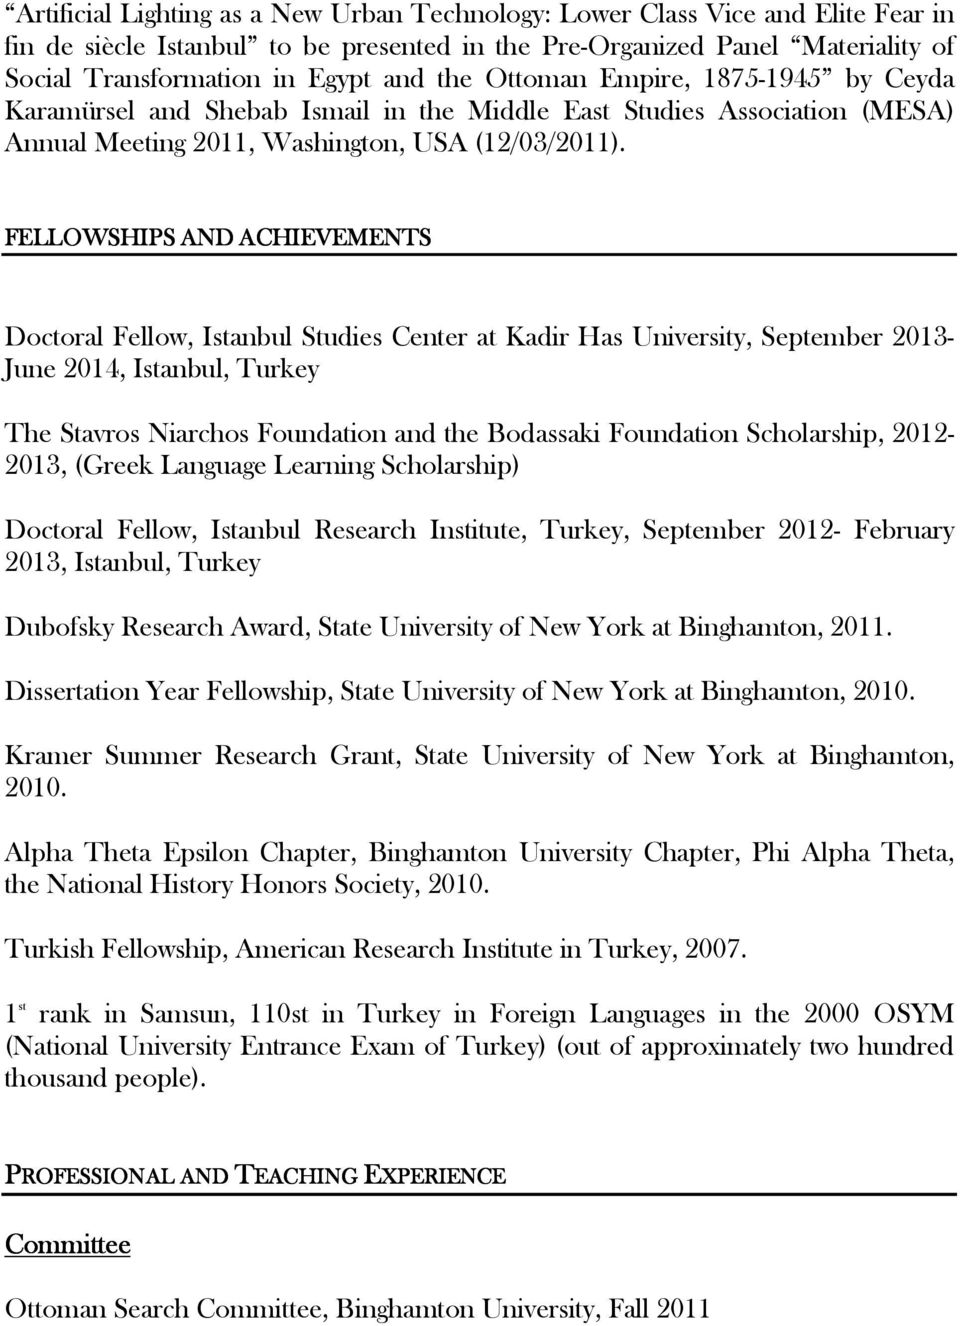 FELLOWSHIPS AND ACHIEVEMENTS Doctoral Fellow, Istanbul Studies Center at Kadir Has University, September 2013- June 2014, Istanbul, Turkey The Stavros Niarchos Foundation and the Bodassaki Foundation